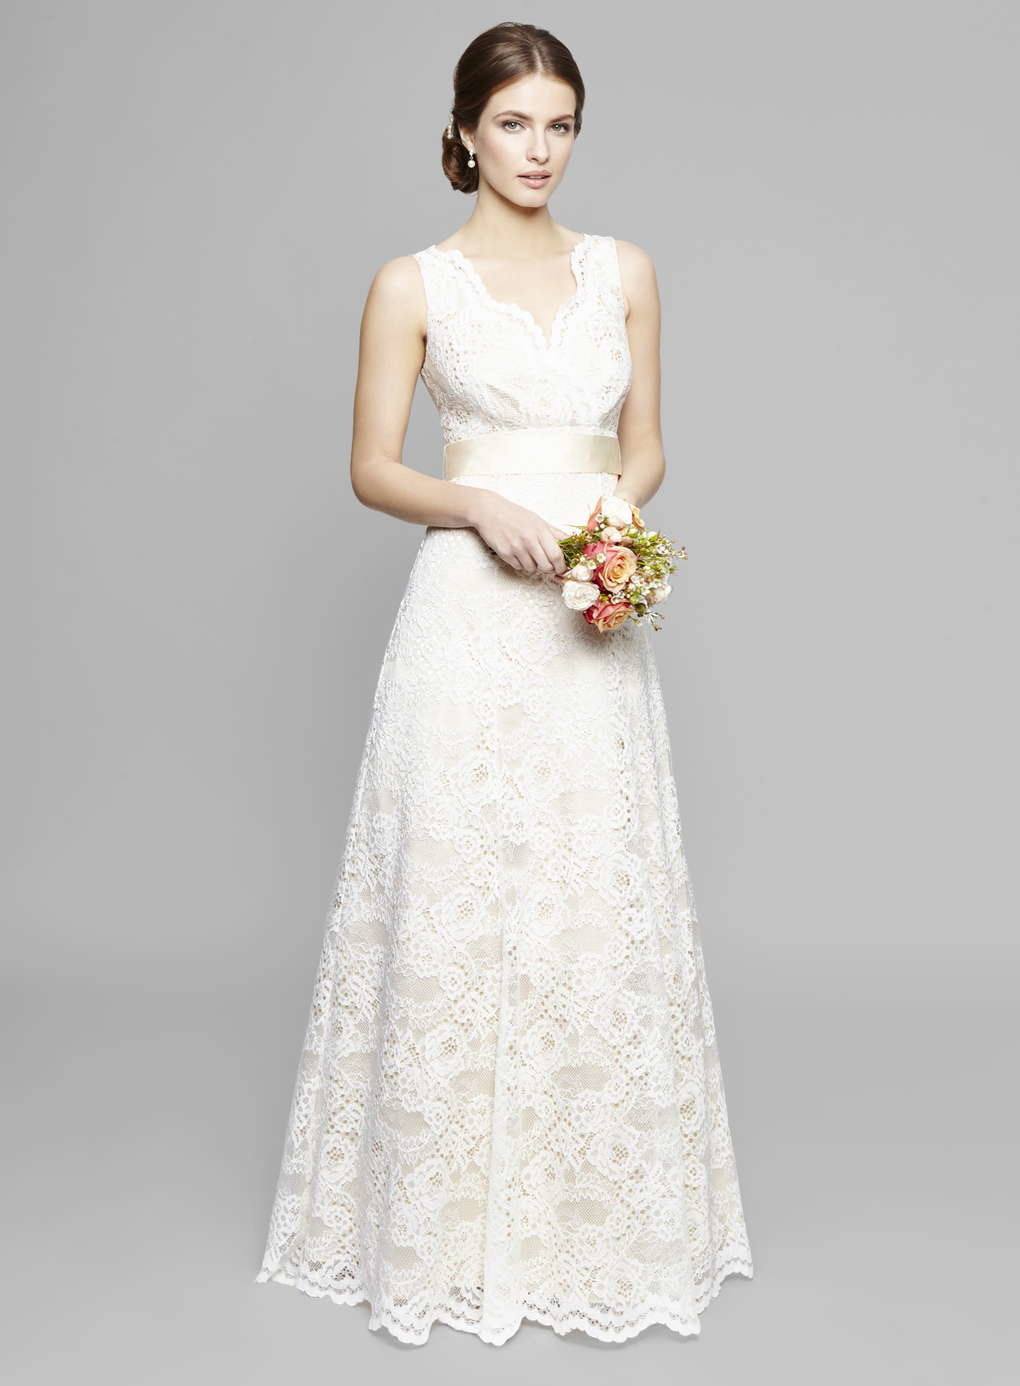 Ten Best High Street Wedding Dresses for 2016 - SaveOnTheDate